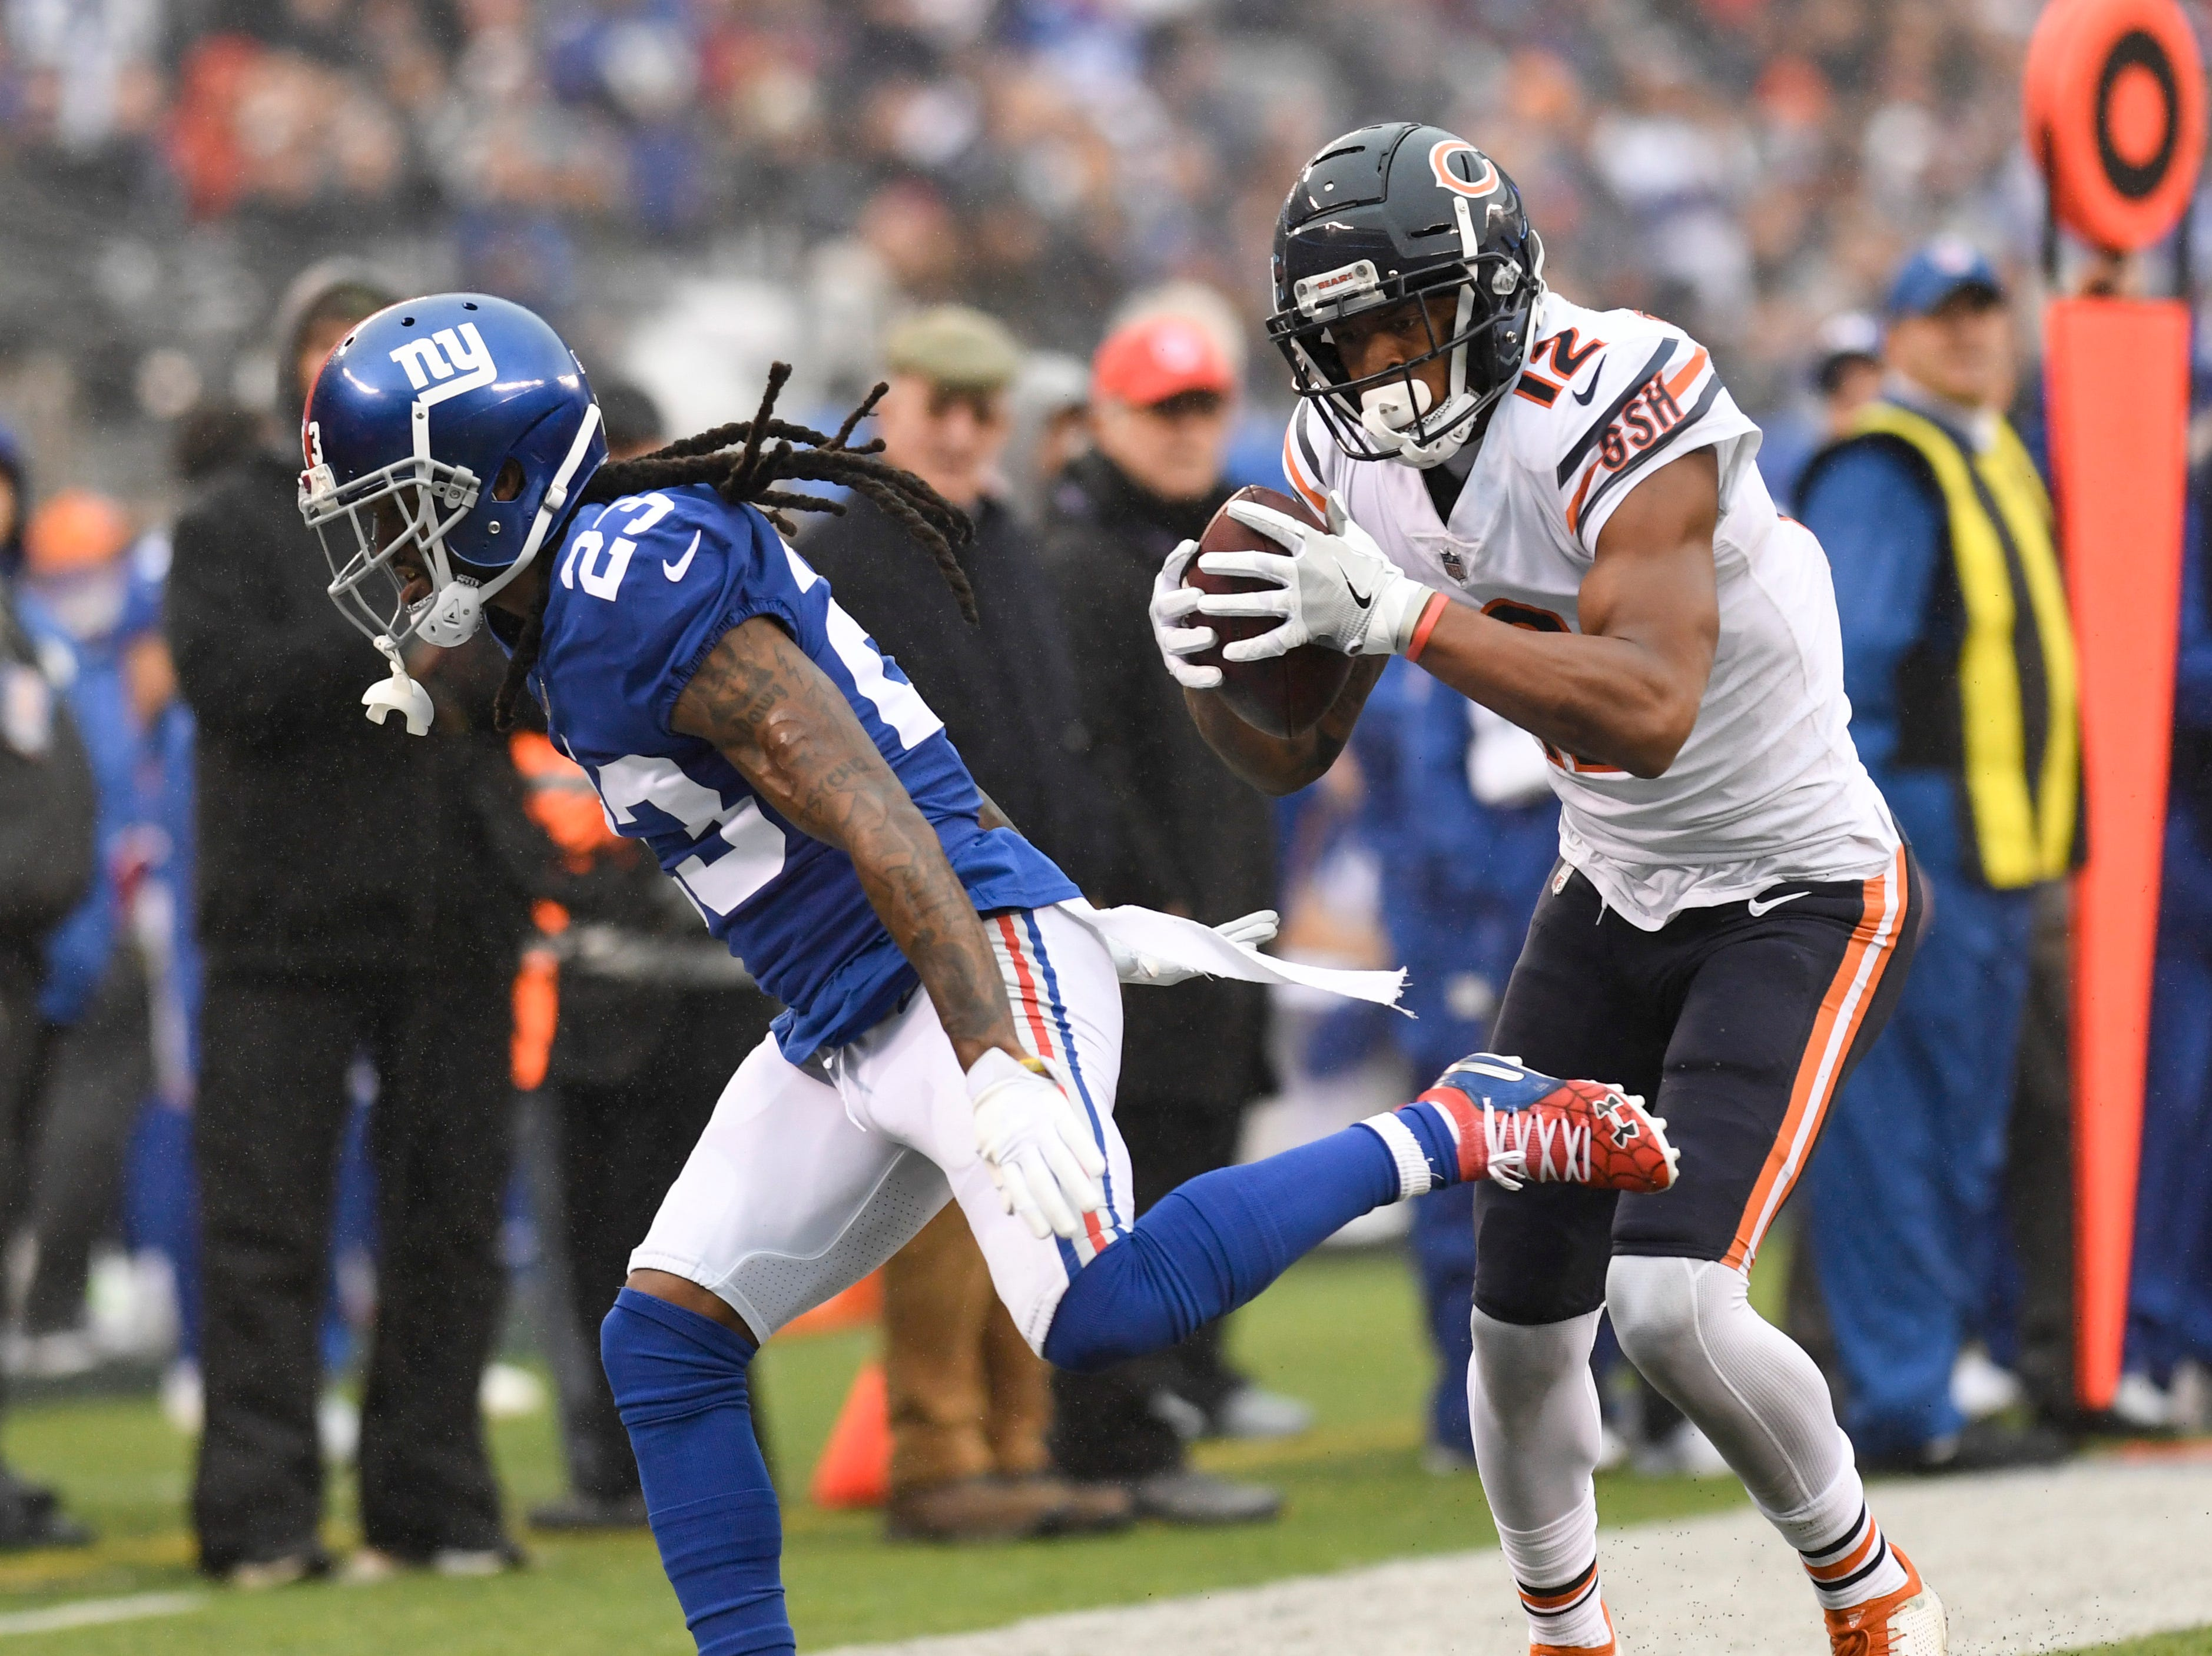 Chicago Bears wide receiver Allen Robinson (12) makes a catch over the head of New York Giants cornerback B.W. Webb (23) in the first half. The New York Giants face the Chicago Bears on Sunday, Dec. 2, 2018, in East Rutherford.